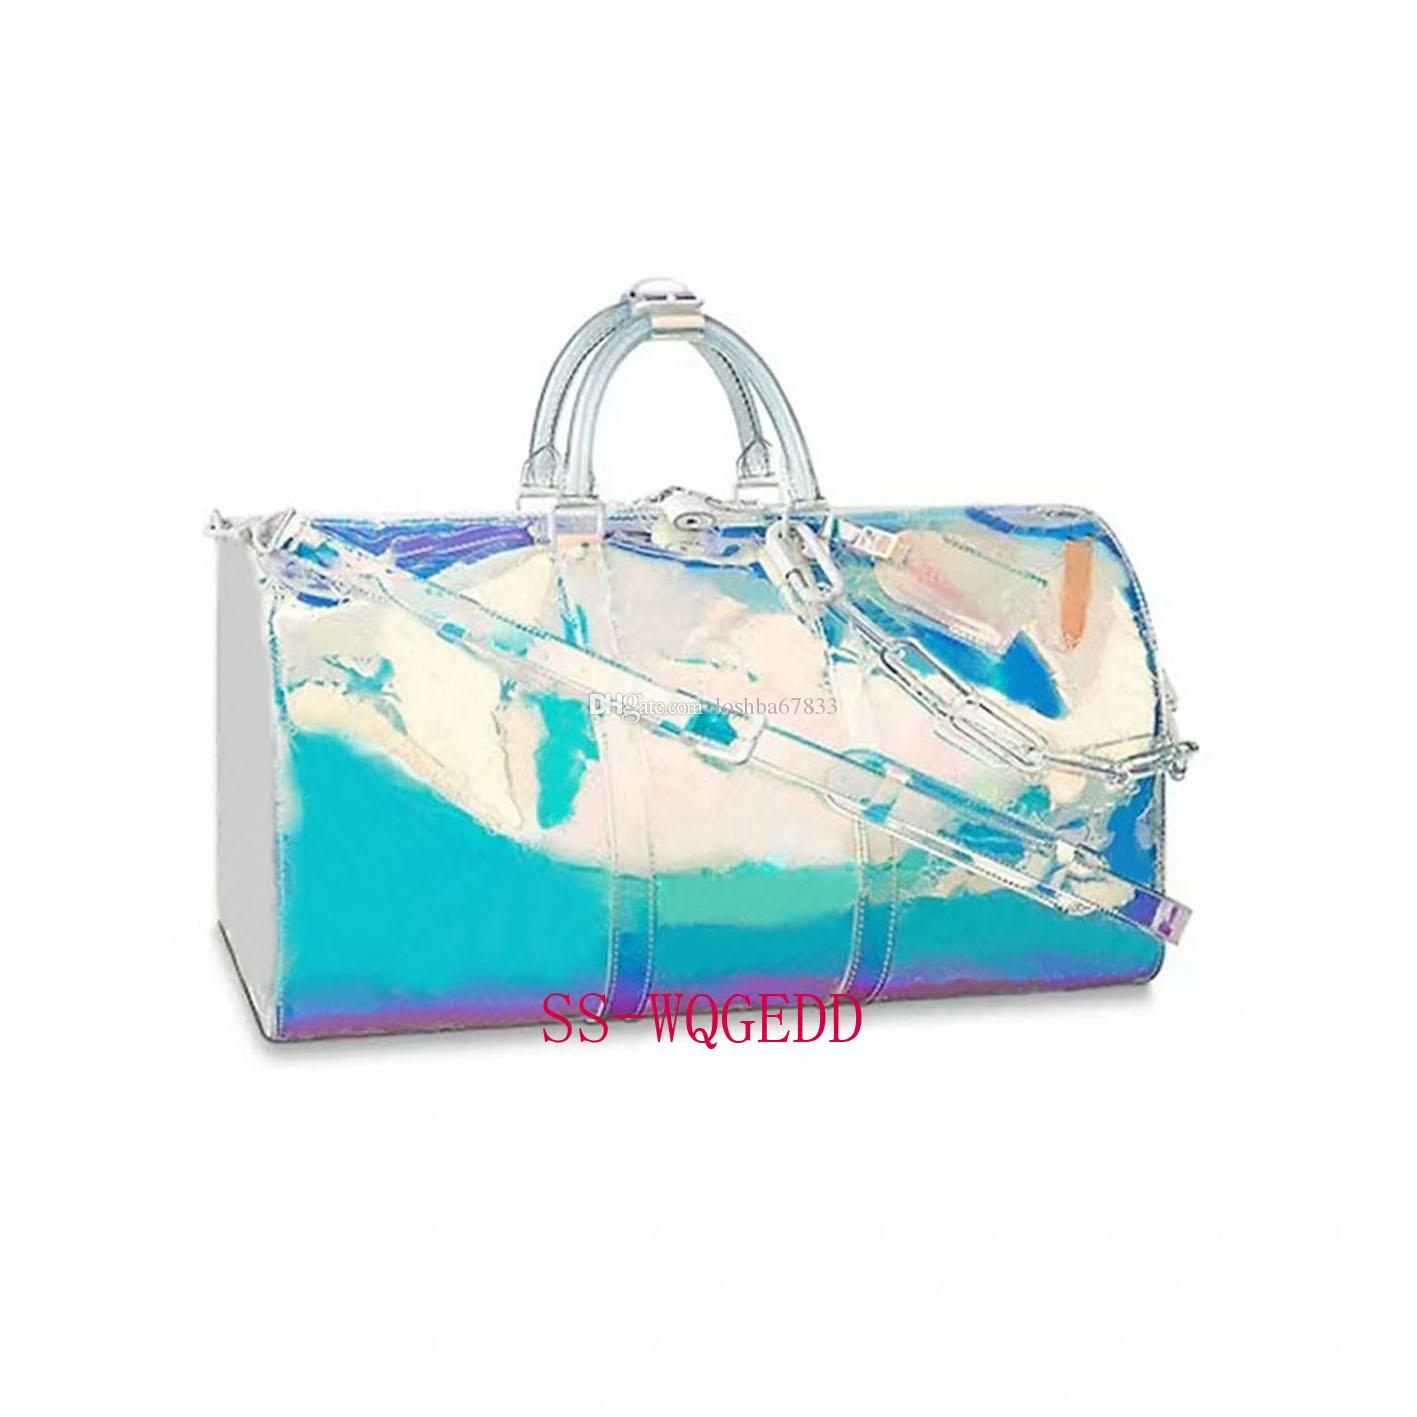 New High Quality Luxury Designer's Travel Bag Transparent Red and Blue PVC Large Capacity Handbags Outdoor Fashion Chain Luggage Bag50x29x23